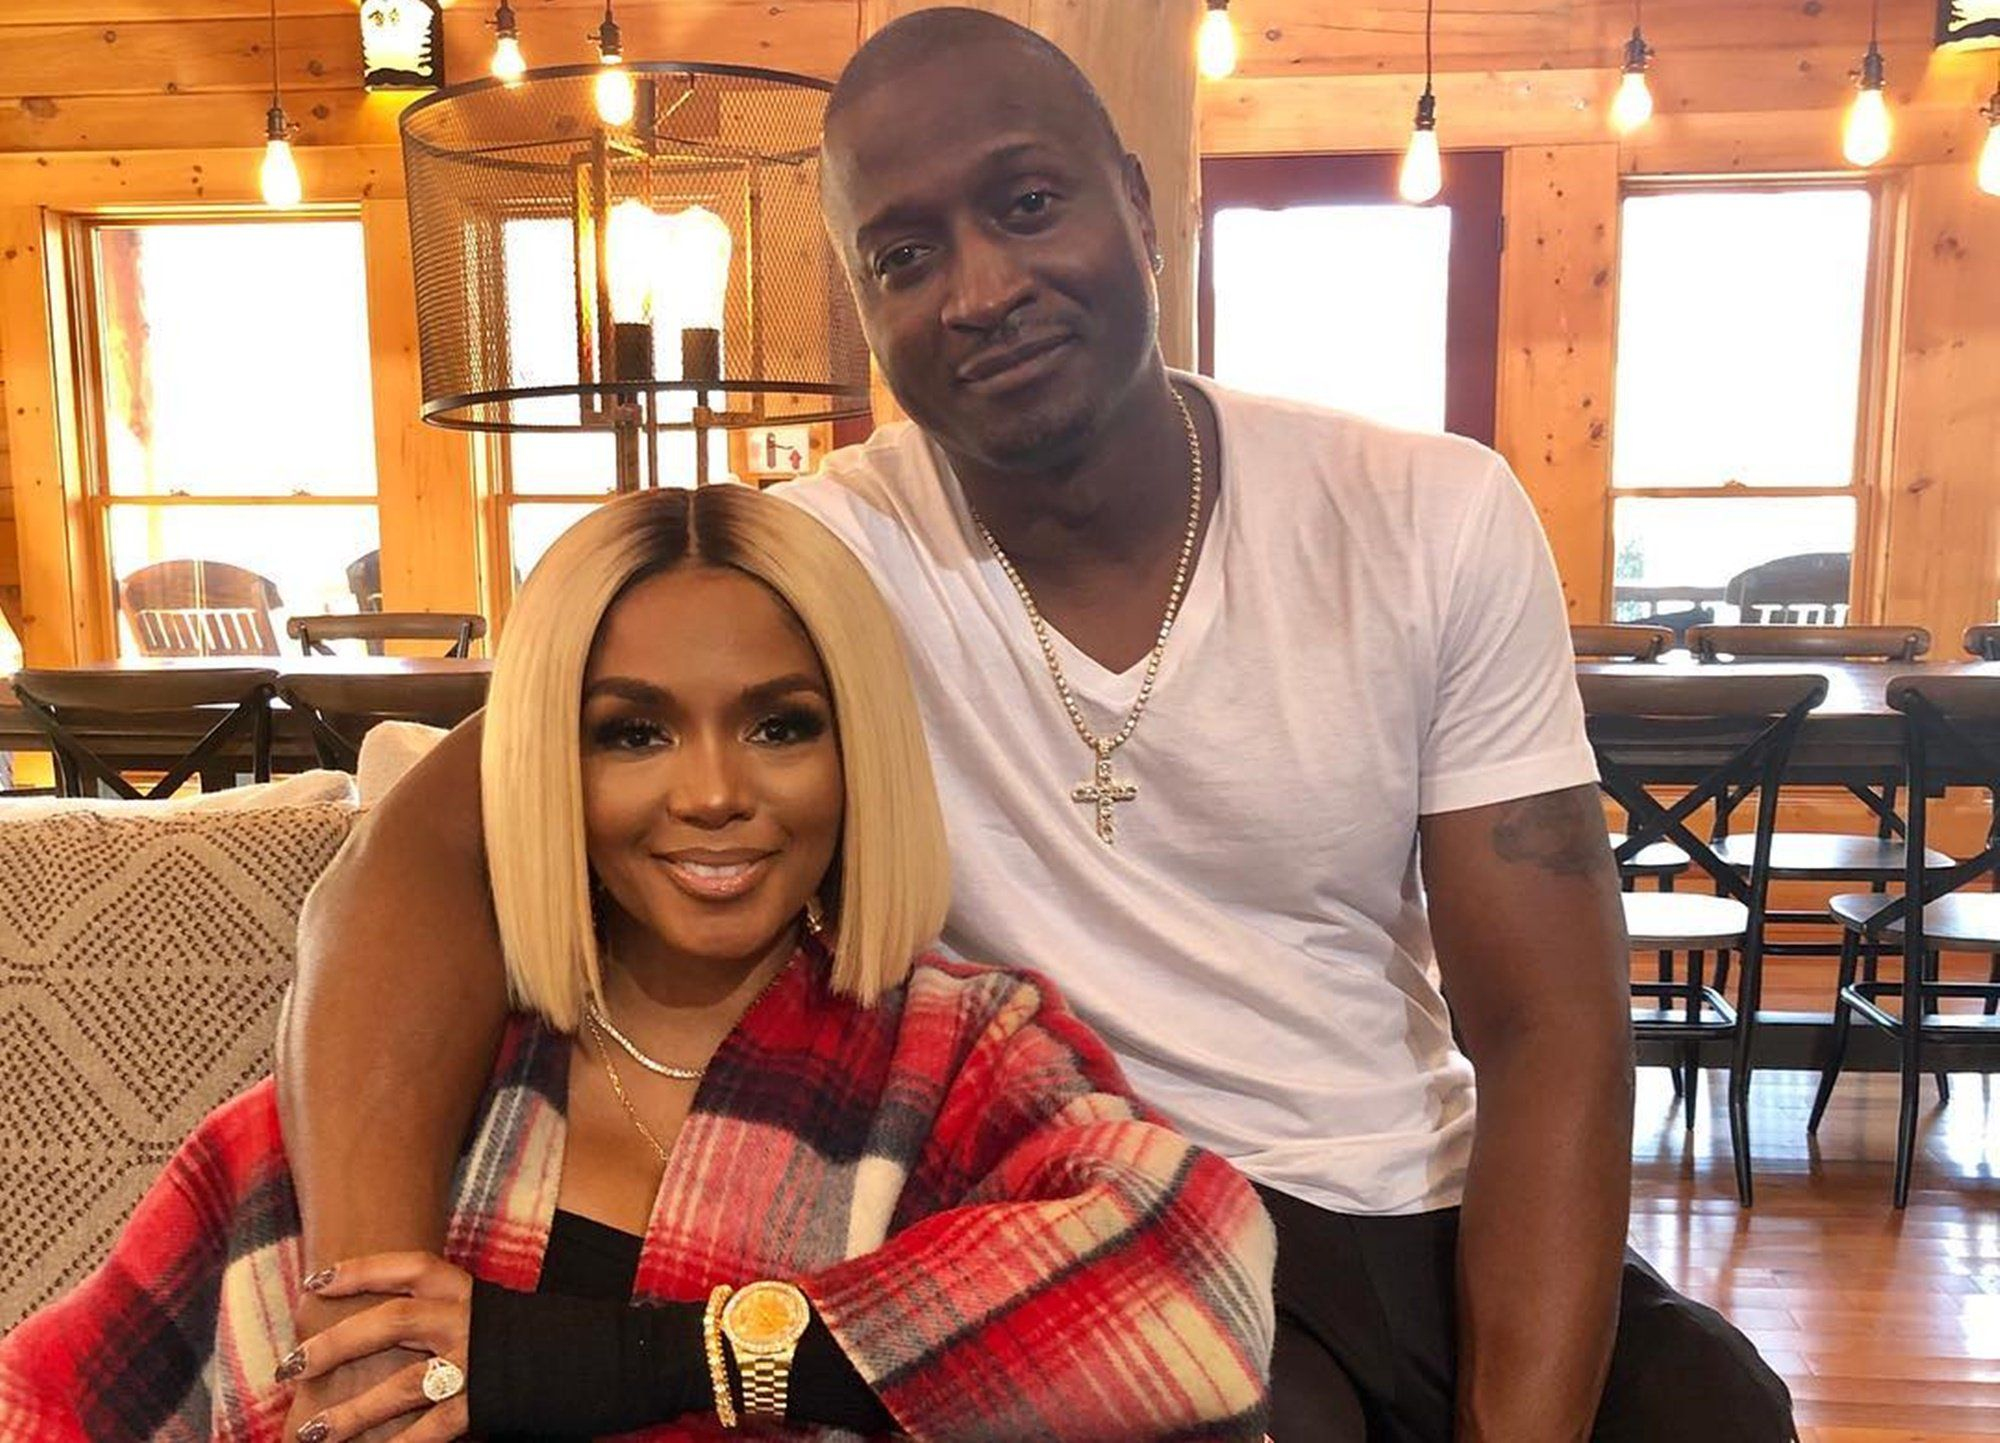 Rasheeda Frost's Latest Photo With Kirk Frost In Which He Touches Her Chest Has Fans Gushing Over Them In The Comments